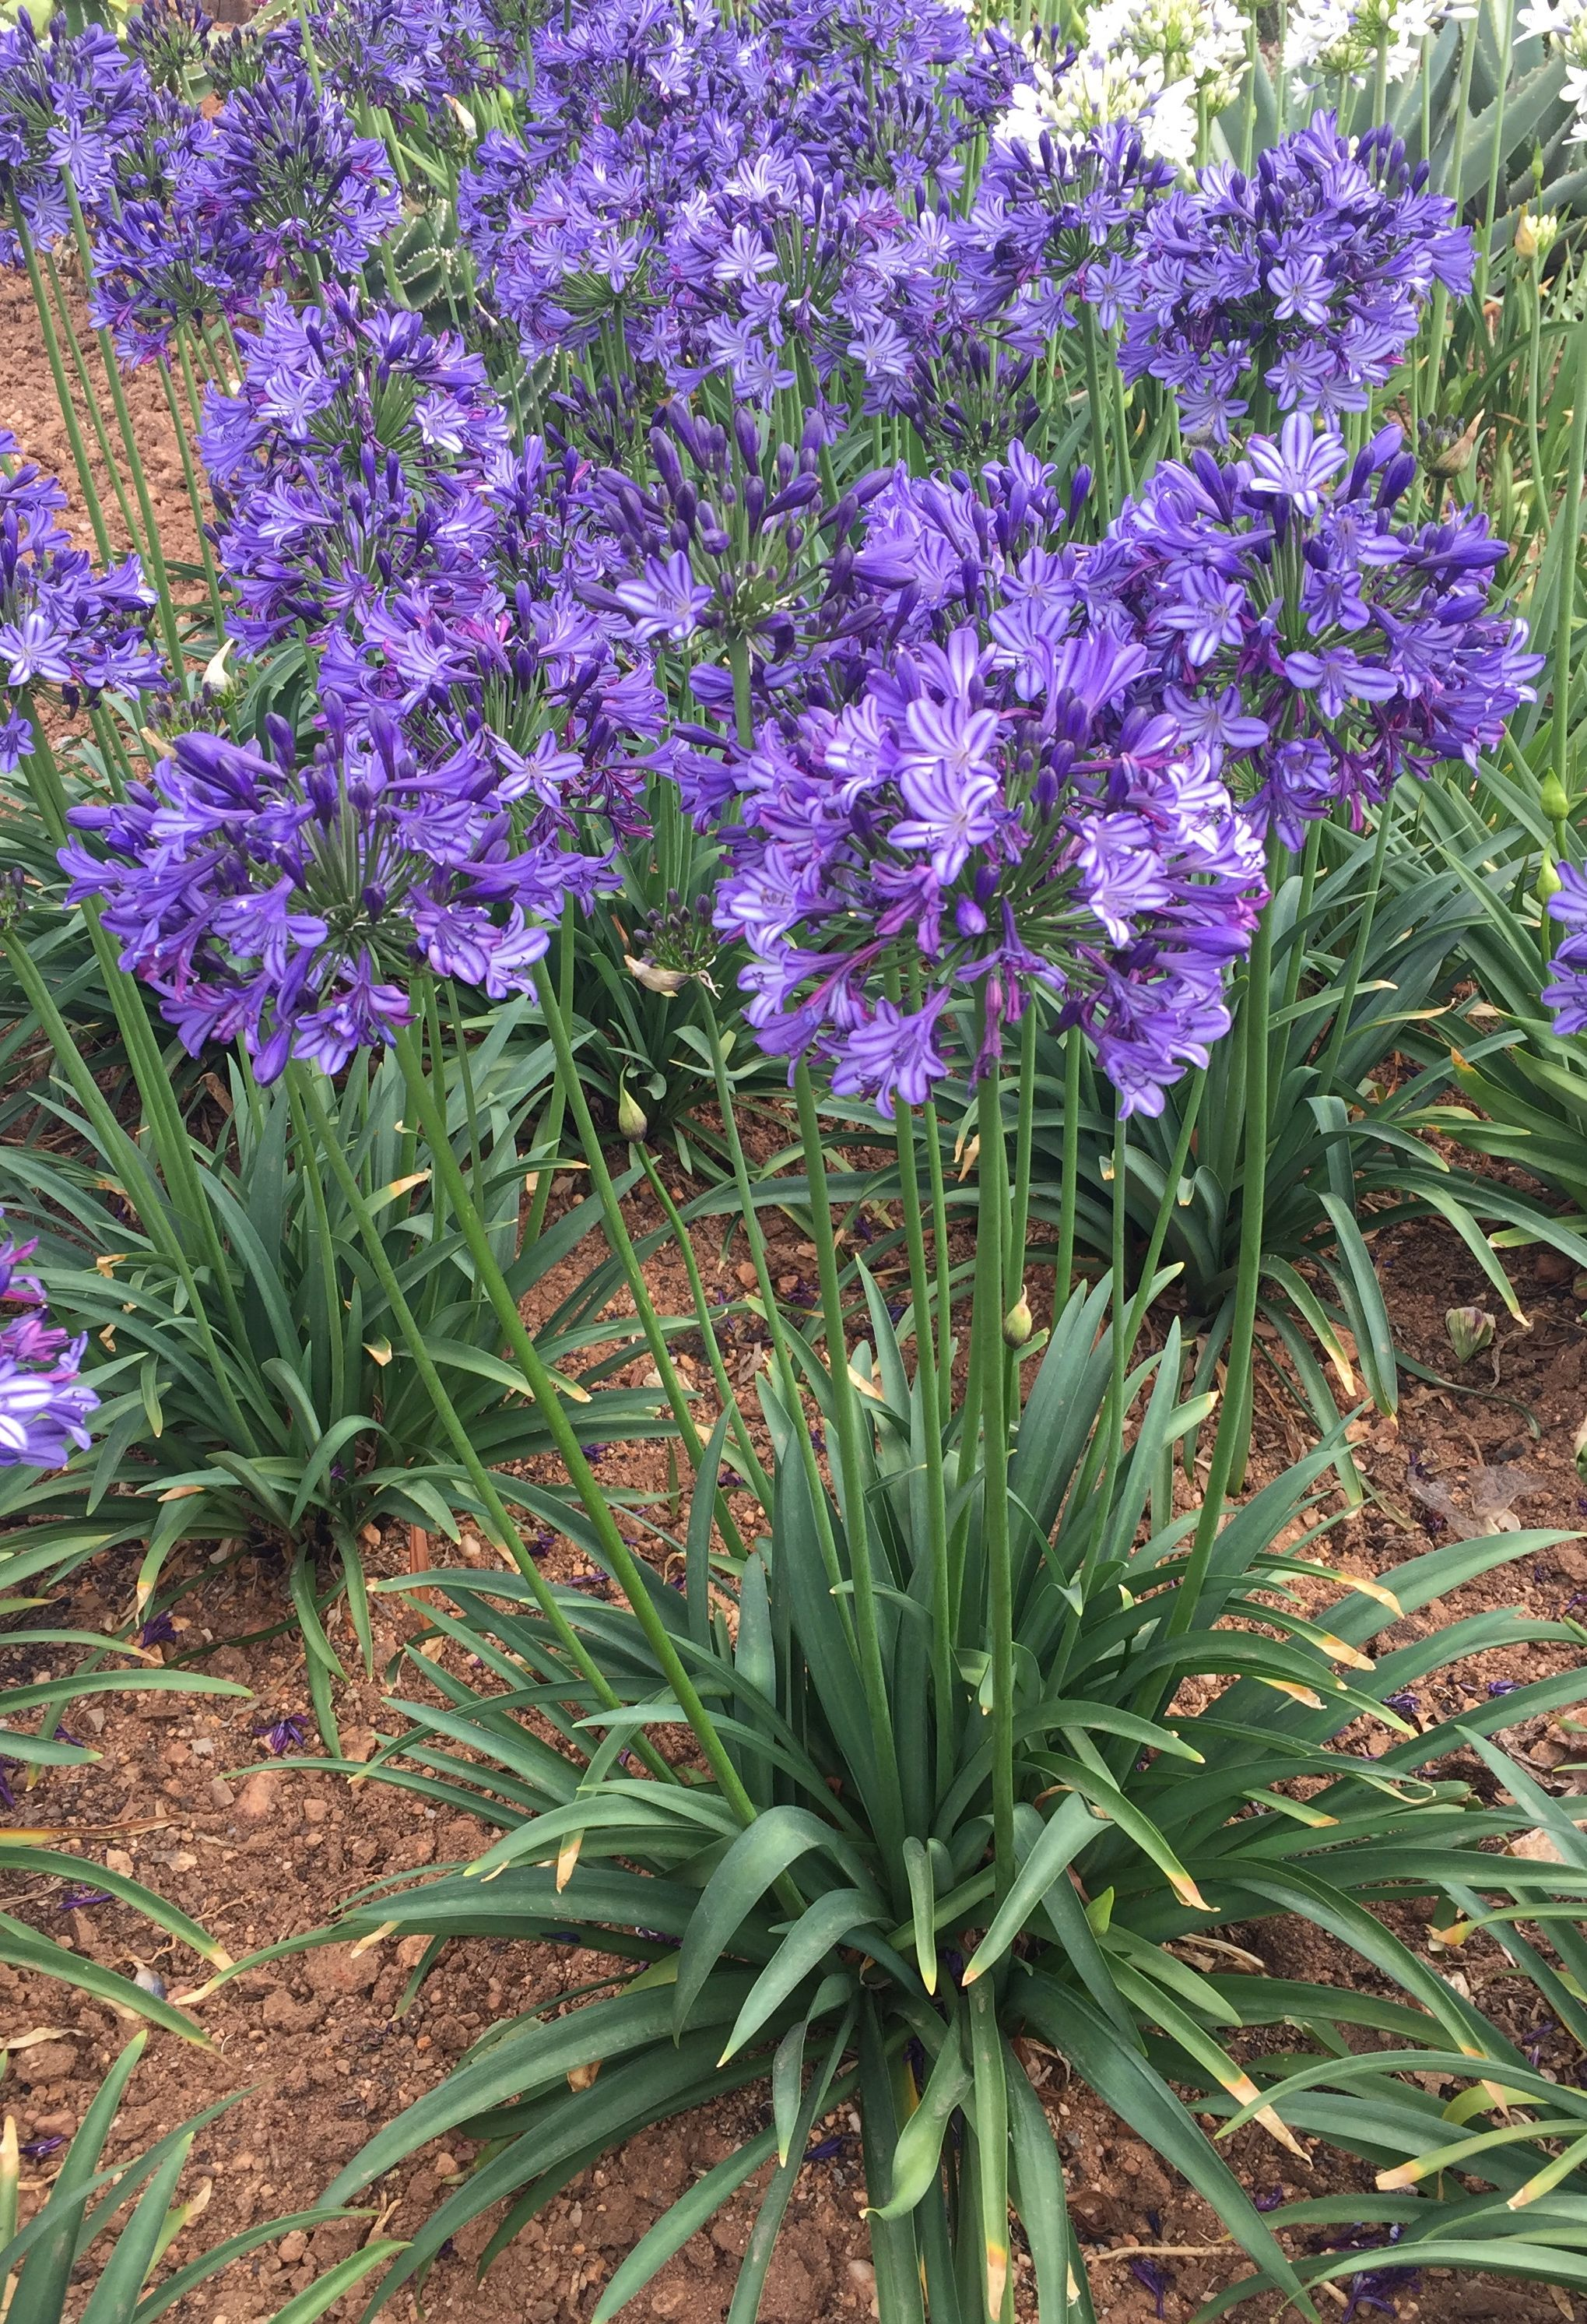 Agapanthus Buccaneer In Full Bloom If Well Looked After It Will Rebloom Throughout The Year Bred By De Wet Plant Breeders Plants Agapanthus Front Garden